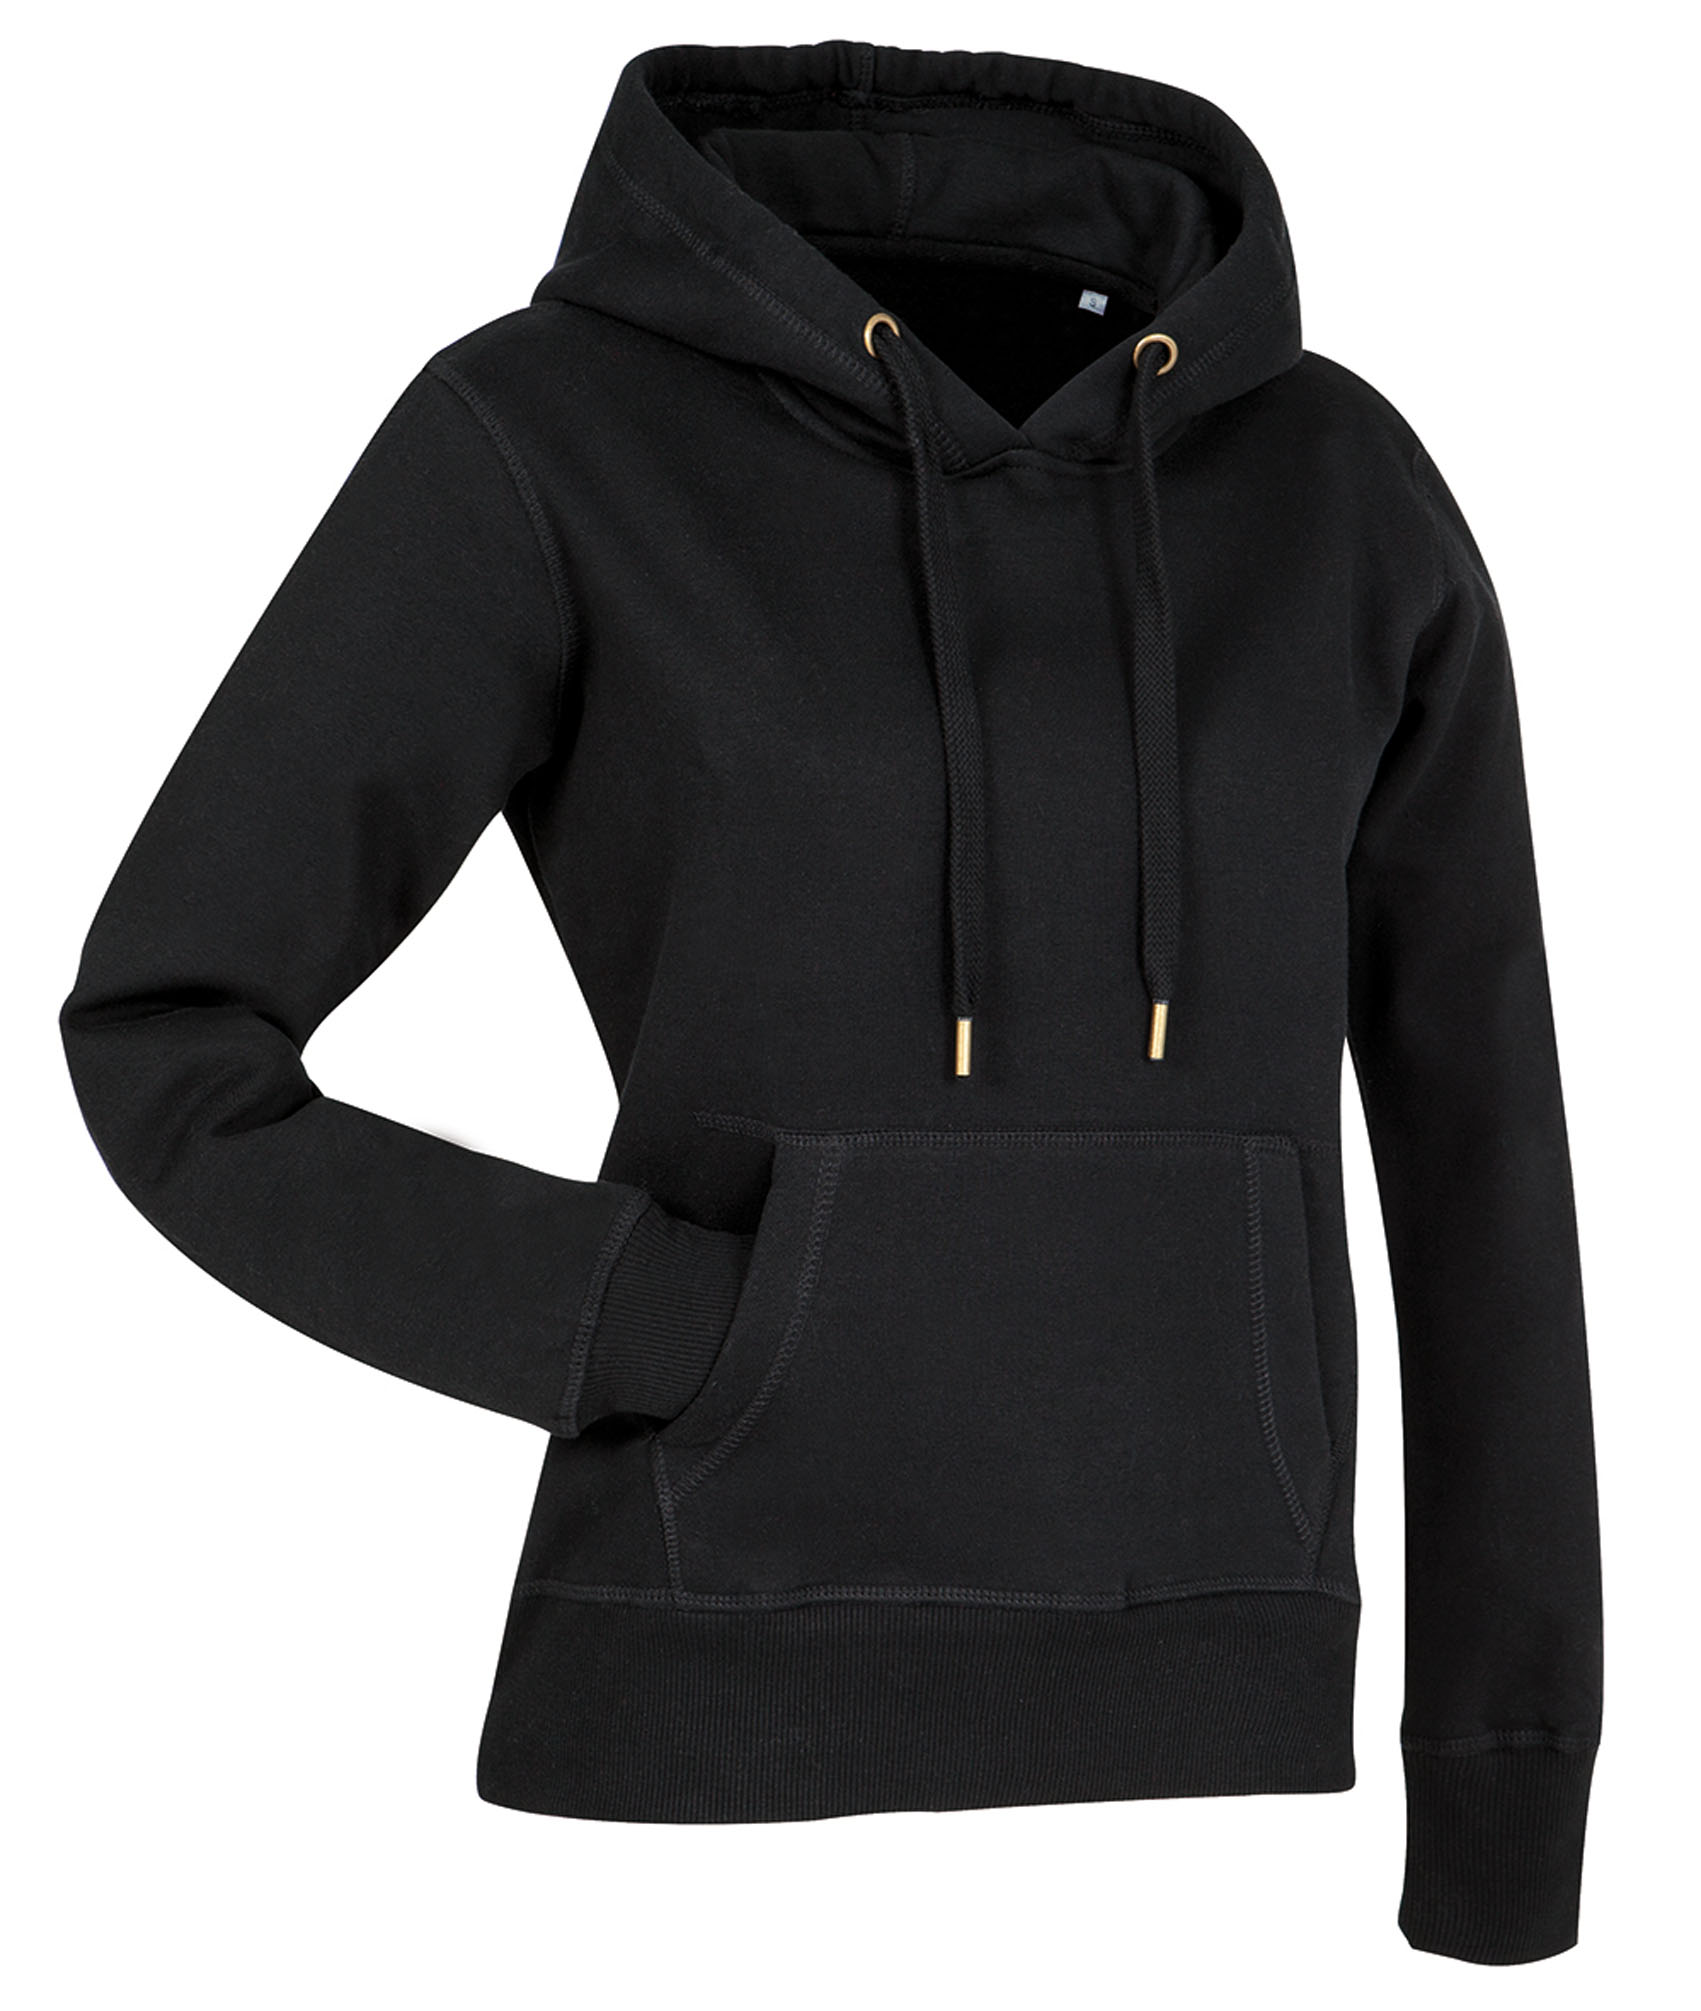 Stedman Sweater Hood Active for her